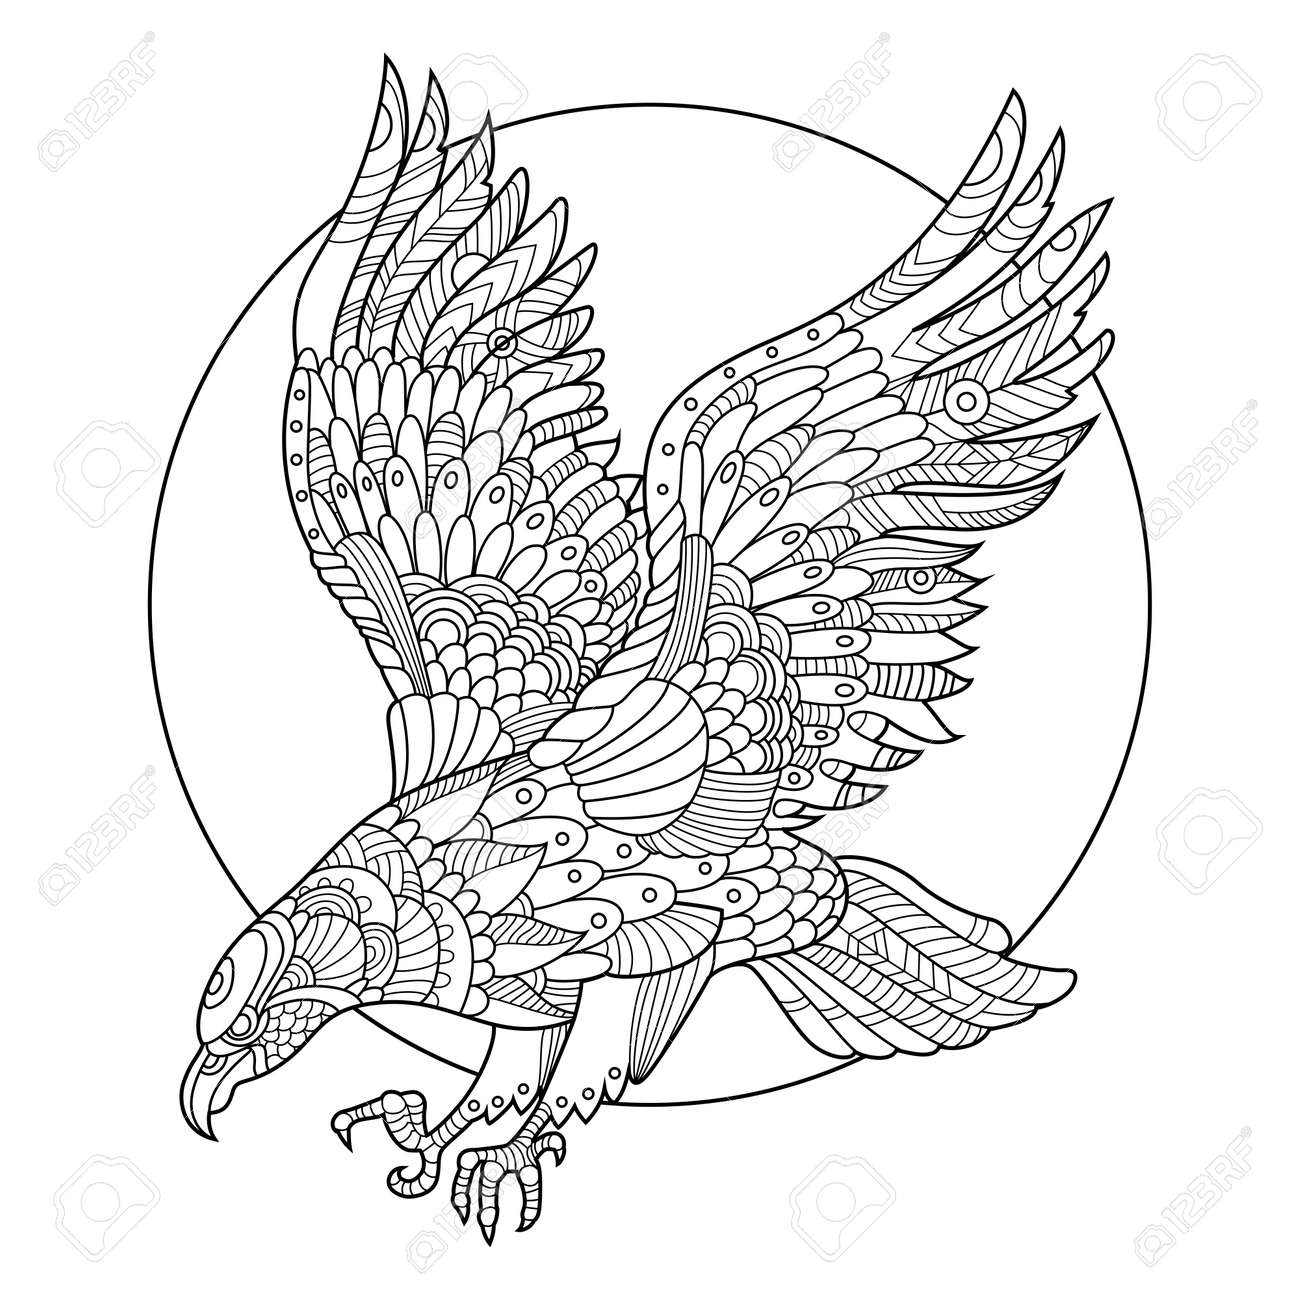 - Eagle Bird Coloring Book For Adults Illustration. Anti-stress